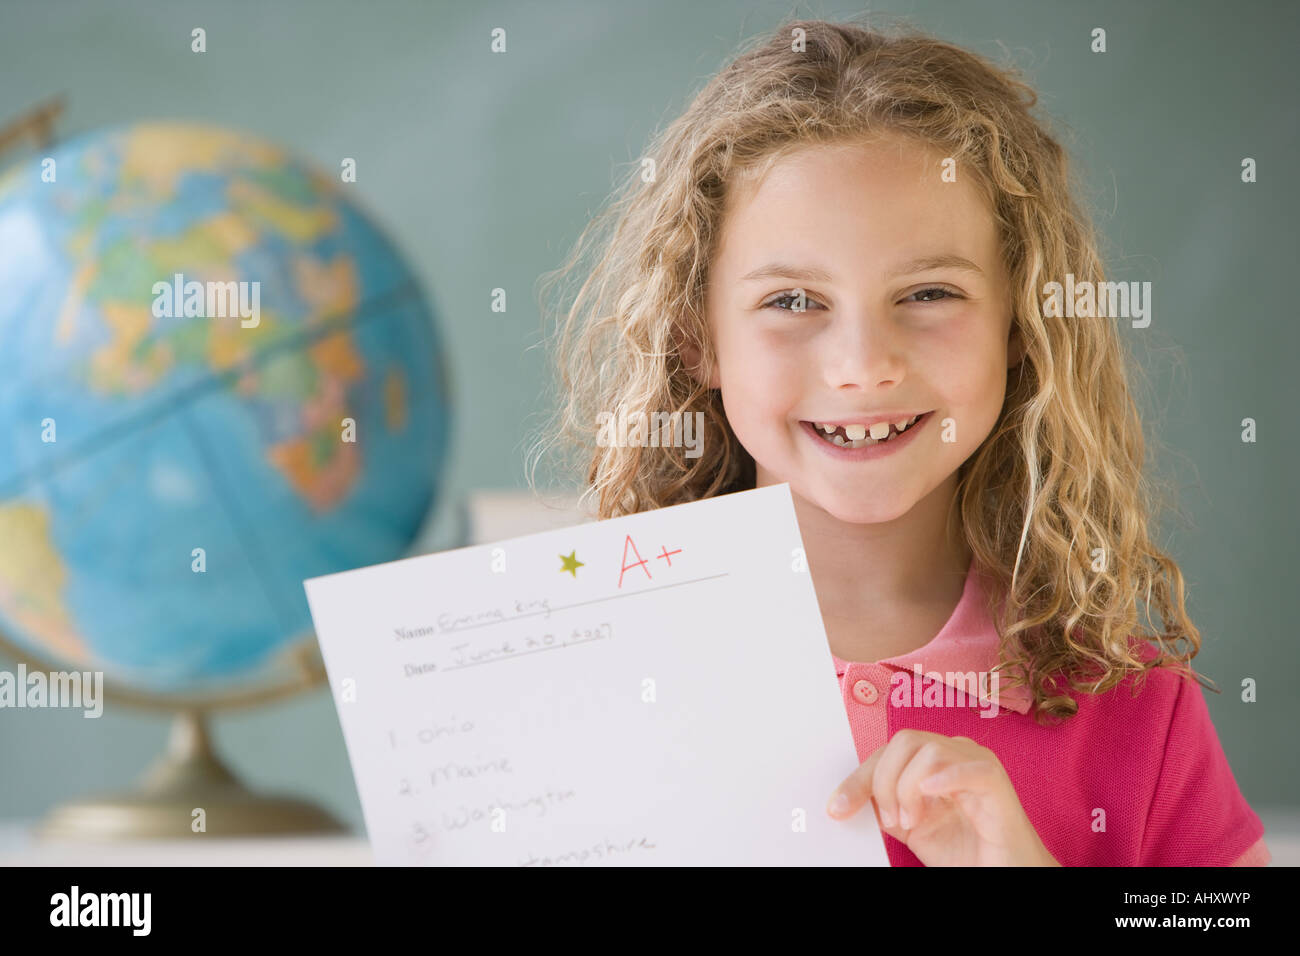 Girl holding up A plus paper in classroom - Stock Image